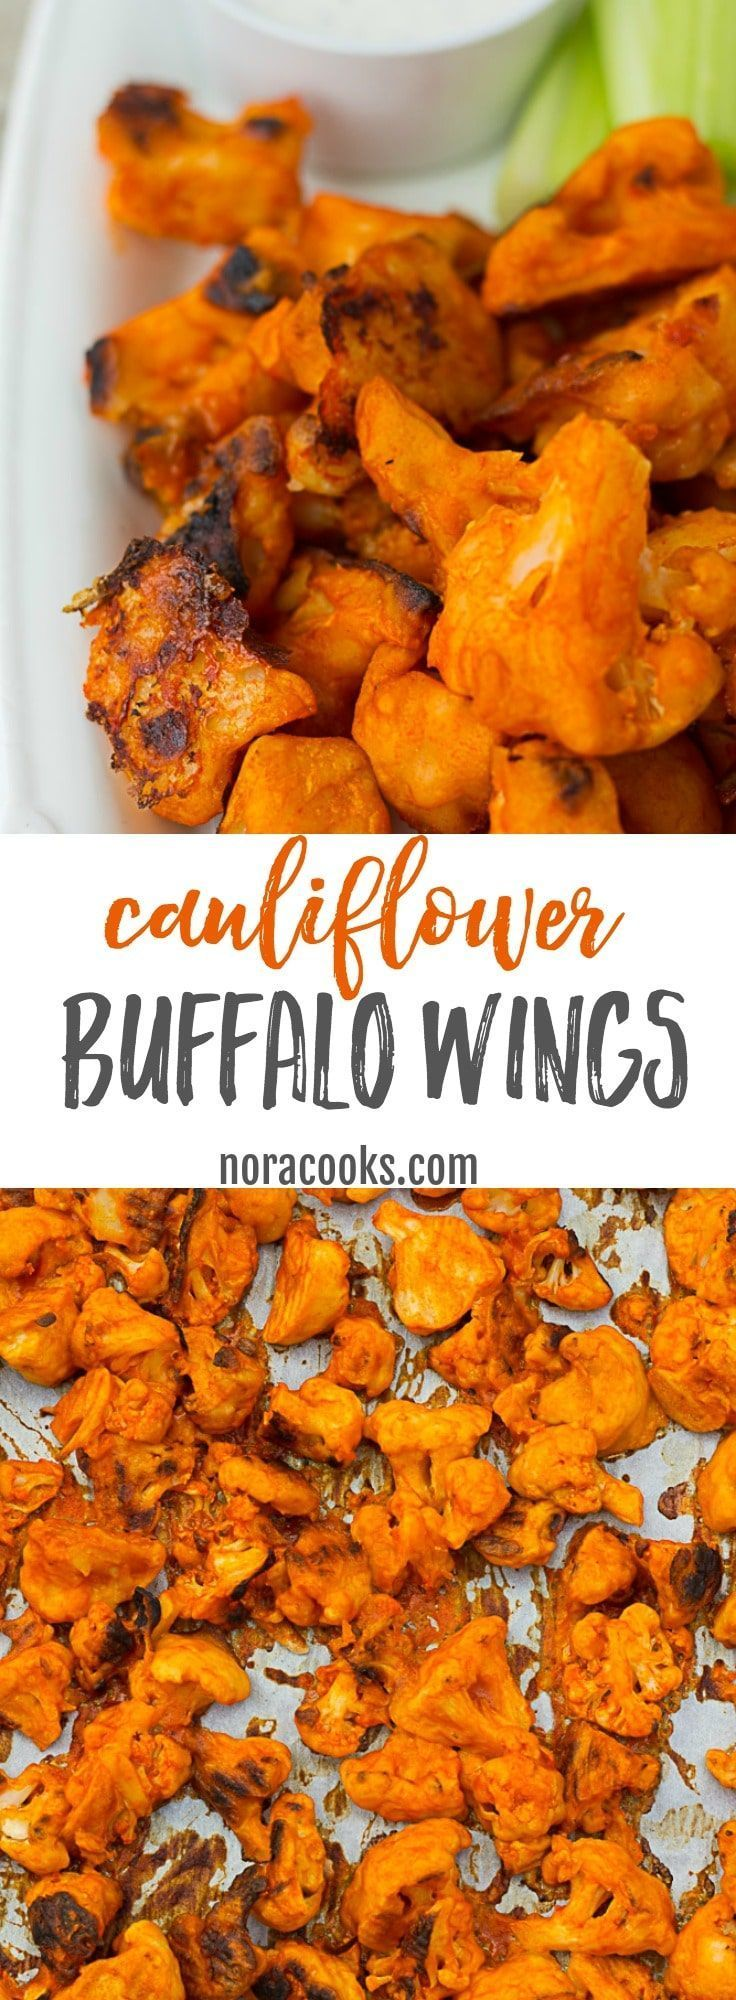 Easy and spicy Vegan Cauliflower Buffalo Wings! Perfect Game Day food! GF option.